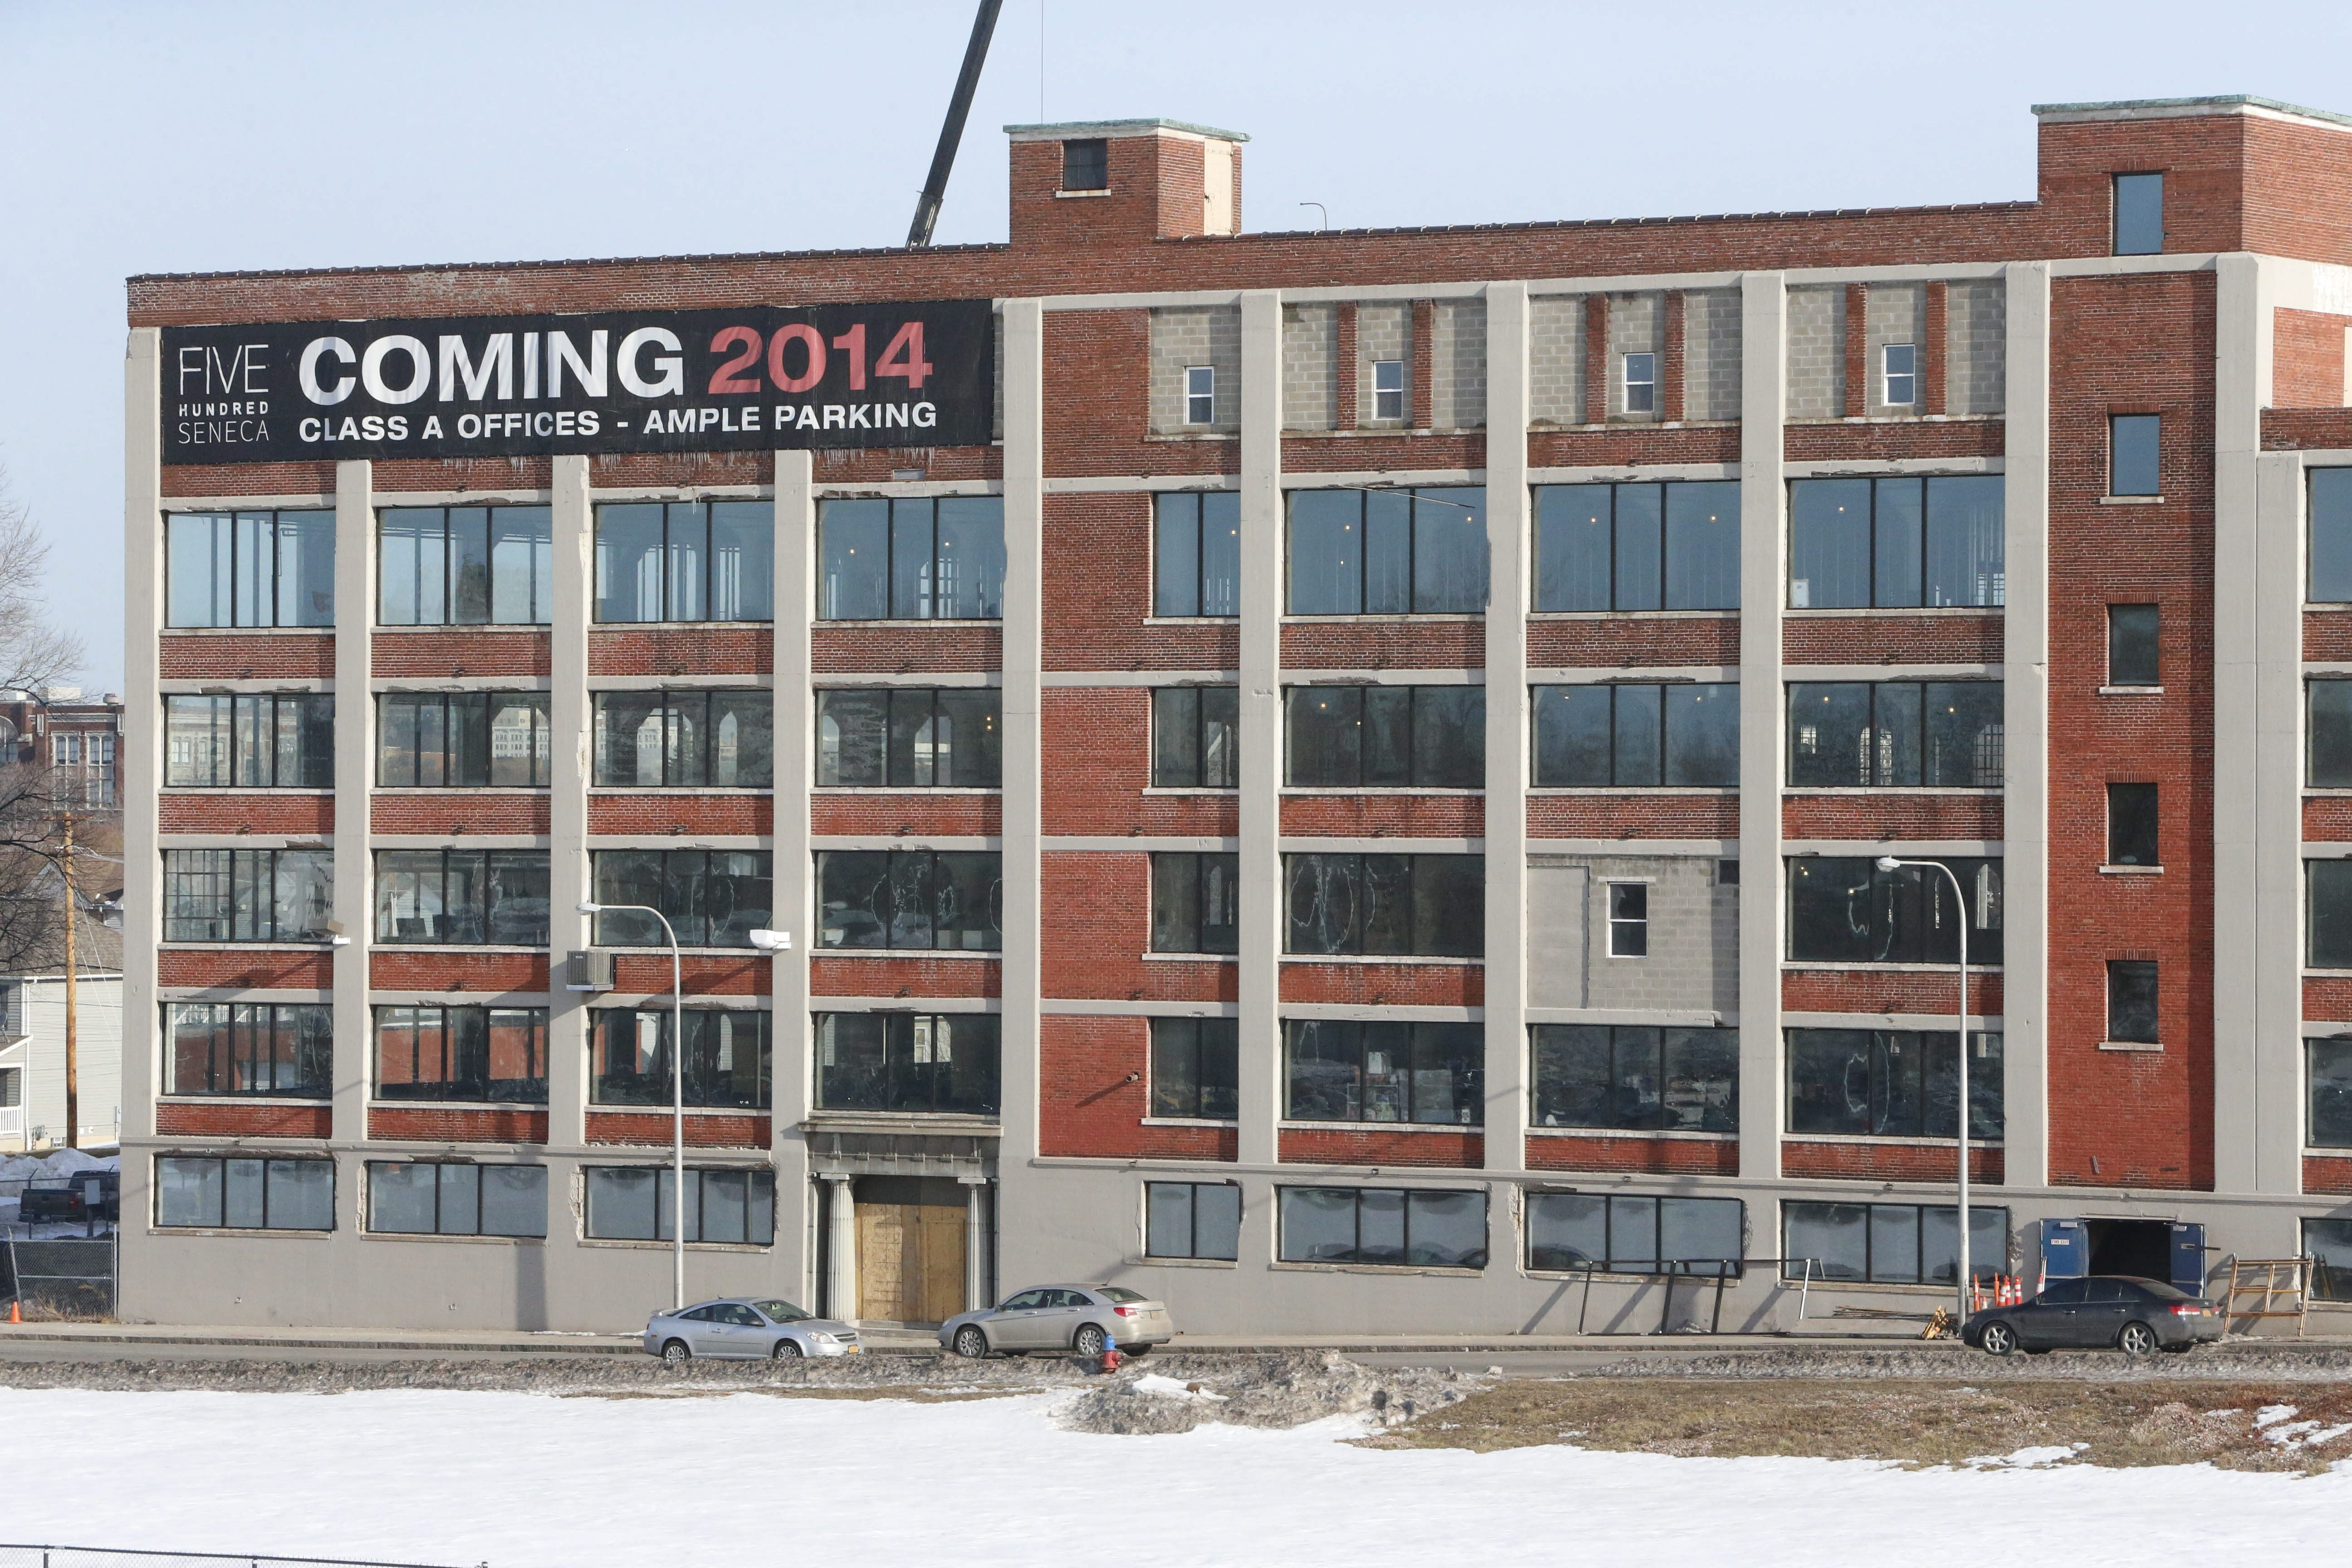 500 Seneca Street, is being renovated by Savarino into a mixed-use residential and commercial space, Friday, March 13, 2015.  (Derek Gee/Buffalo News)